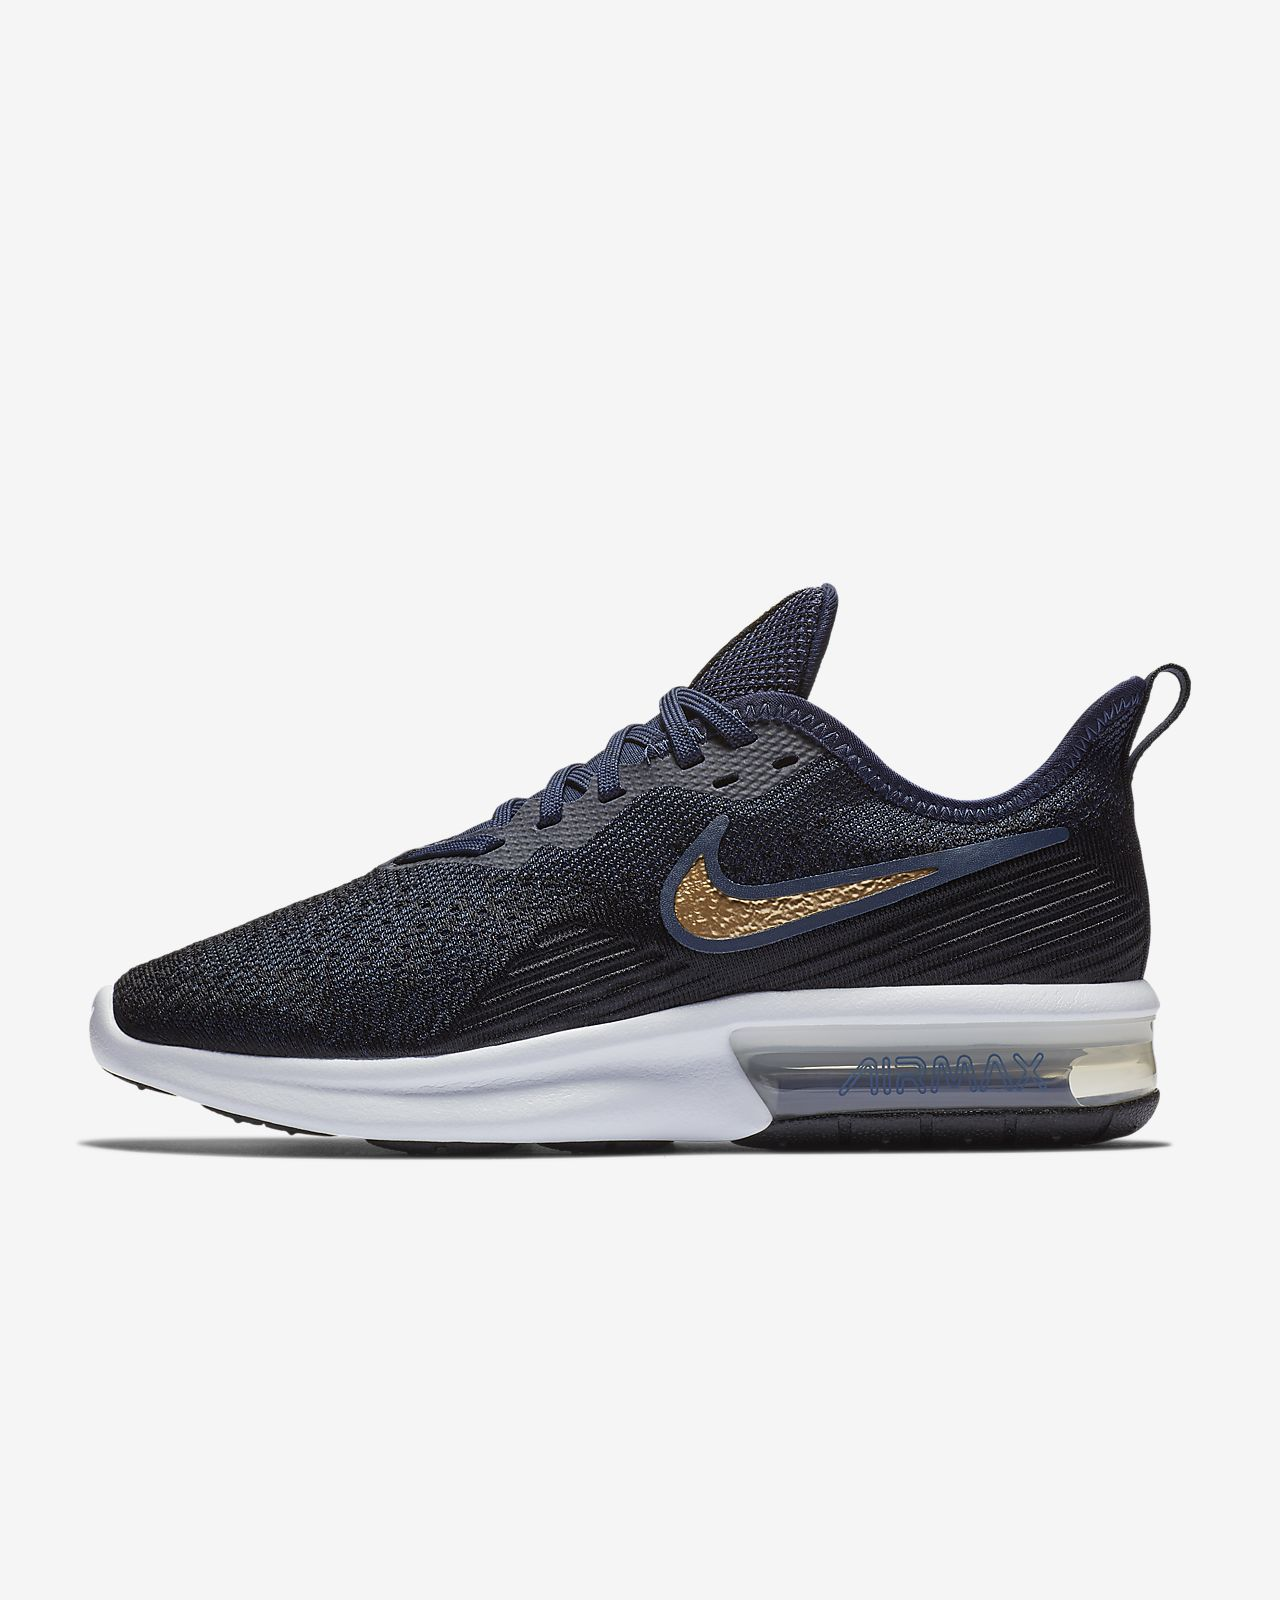 98cacd6cab1d10 Nike Air Max Sequent 4 Women s Shoe. Nike.com GB